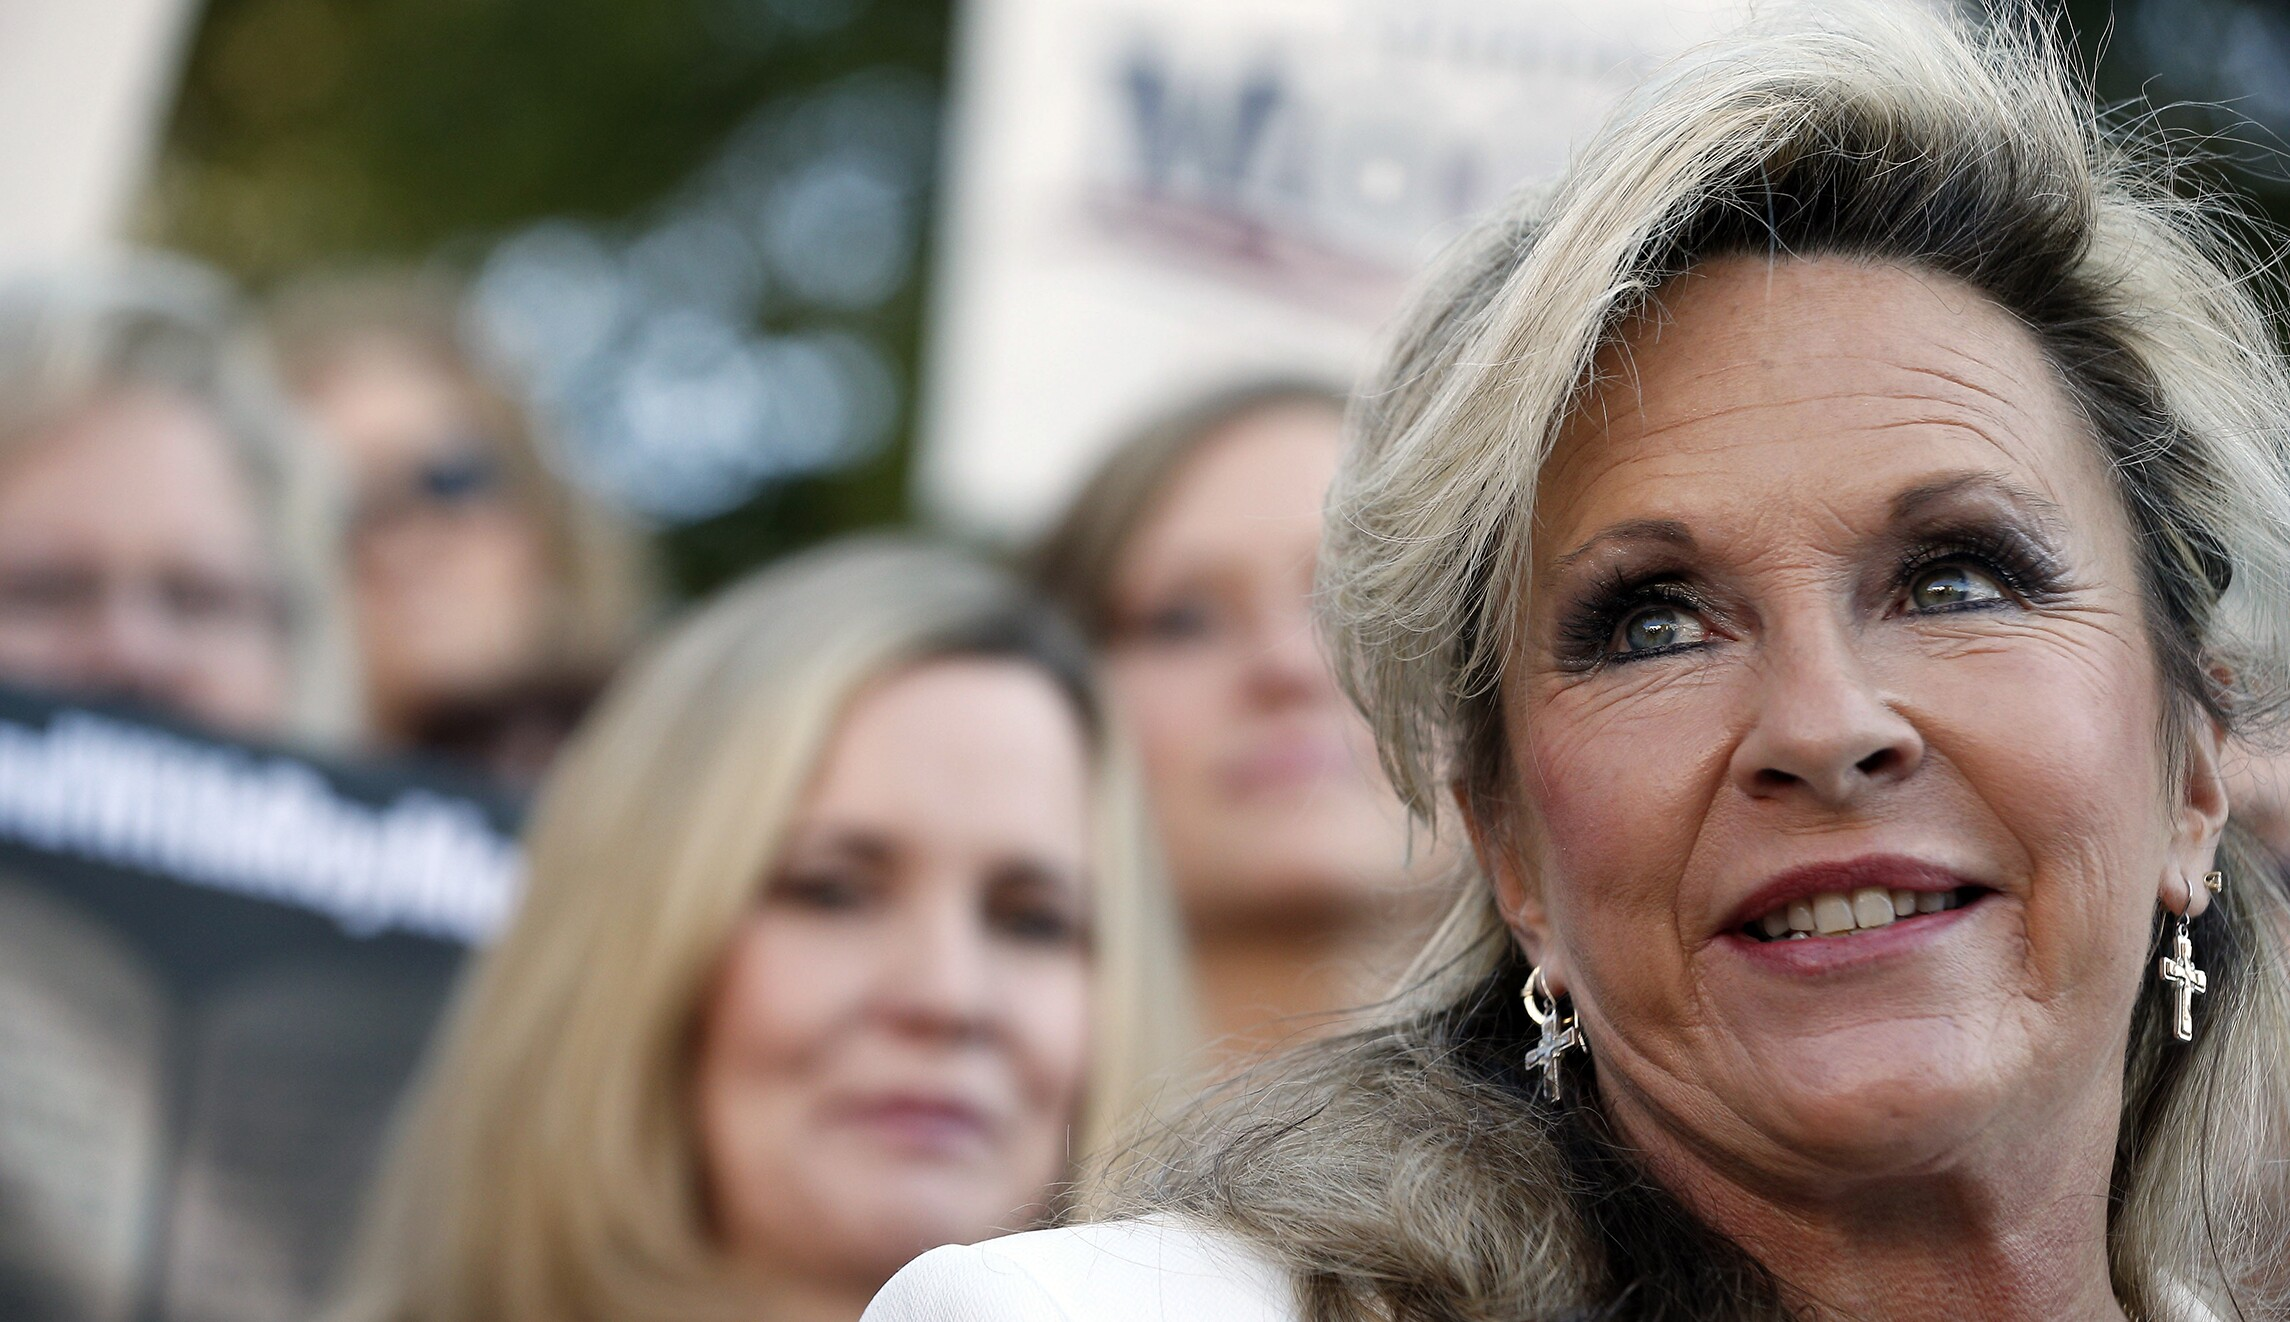 roy moore's wife fends off charges of anti-semitism: 'one of our